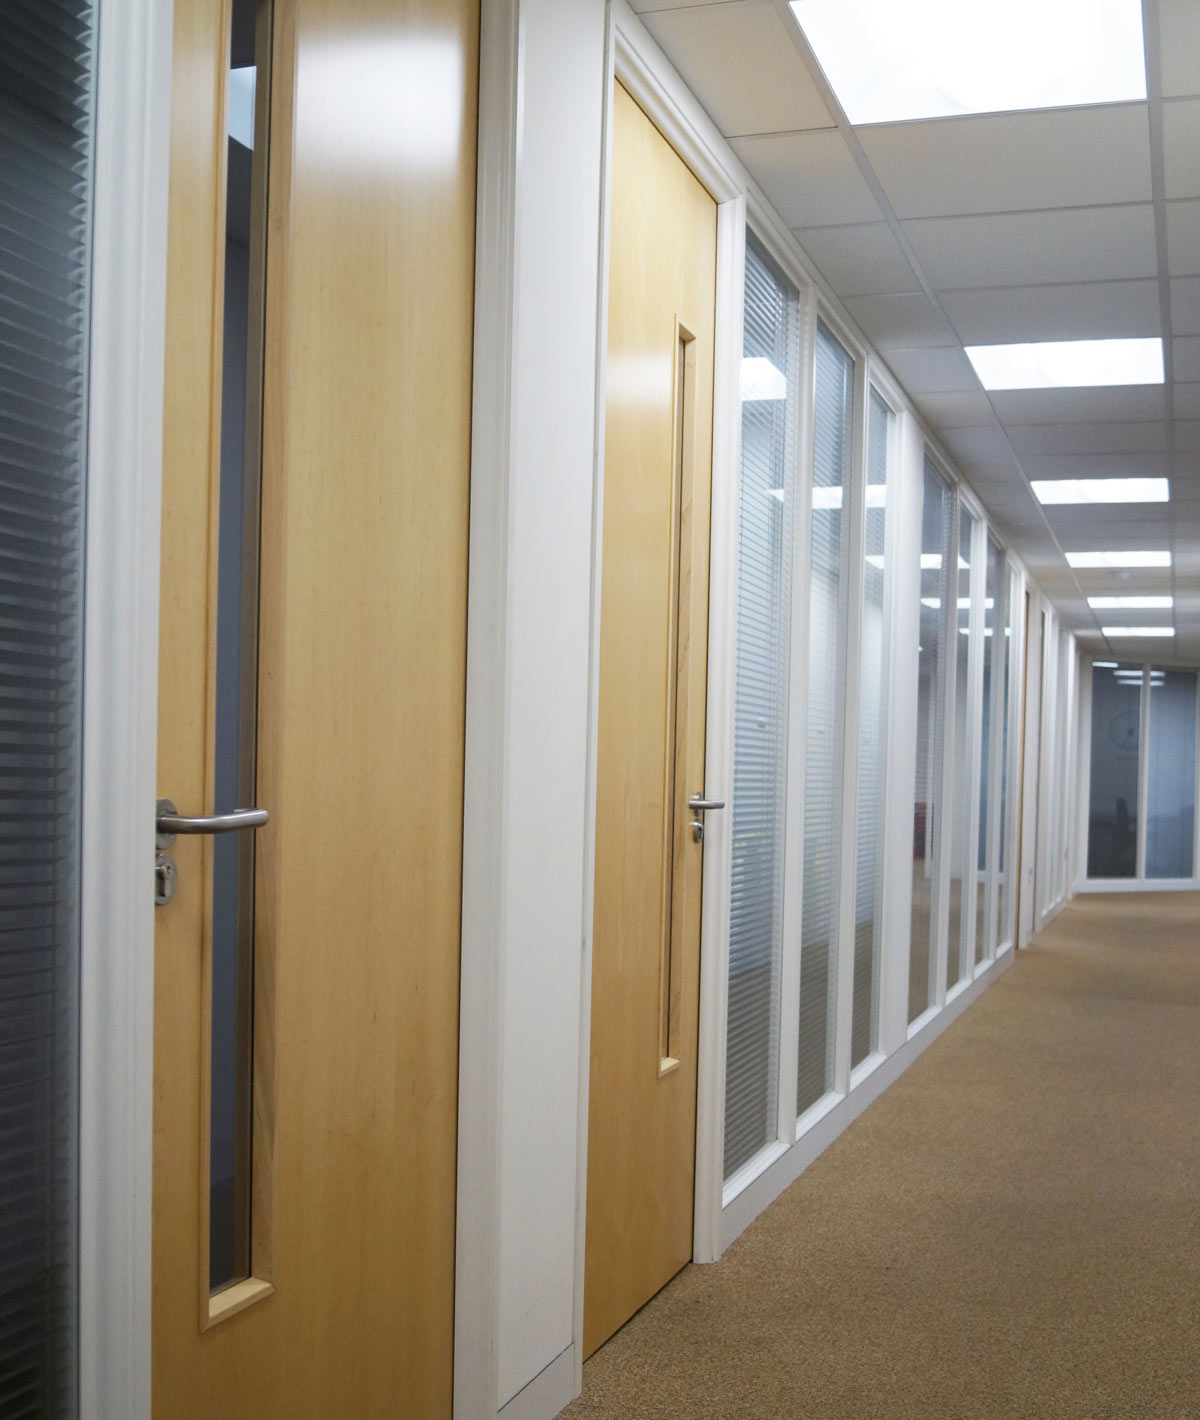 1420 #68502B Office Fit Out Office Concepts wallpaper Quality Wood Doors 40751200